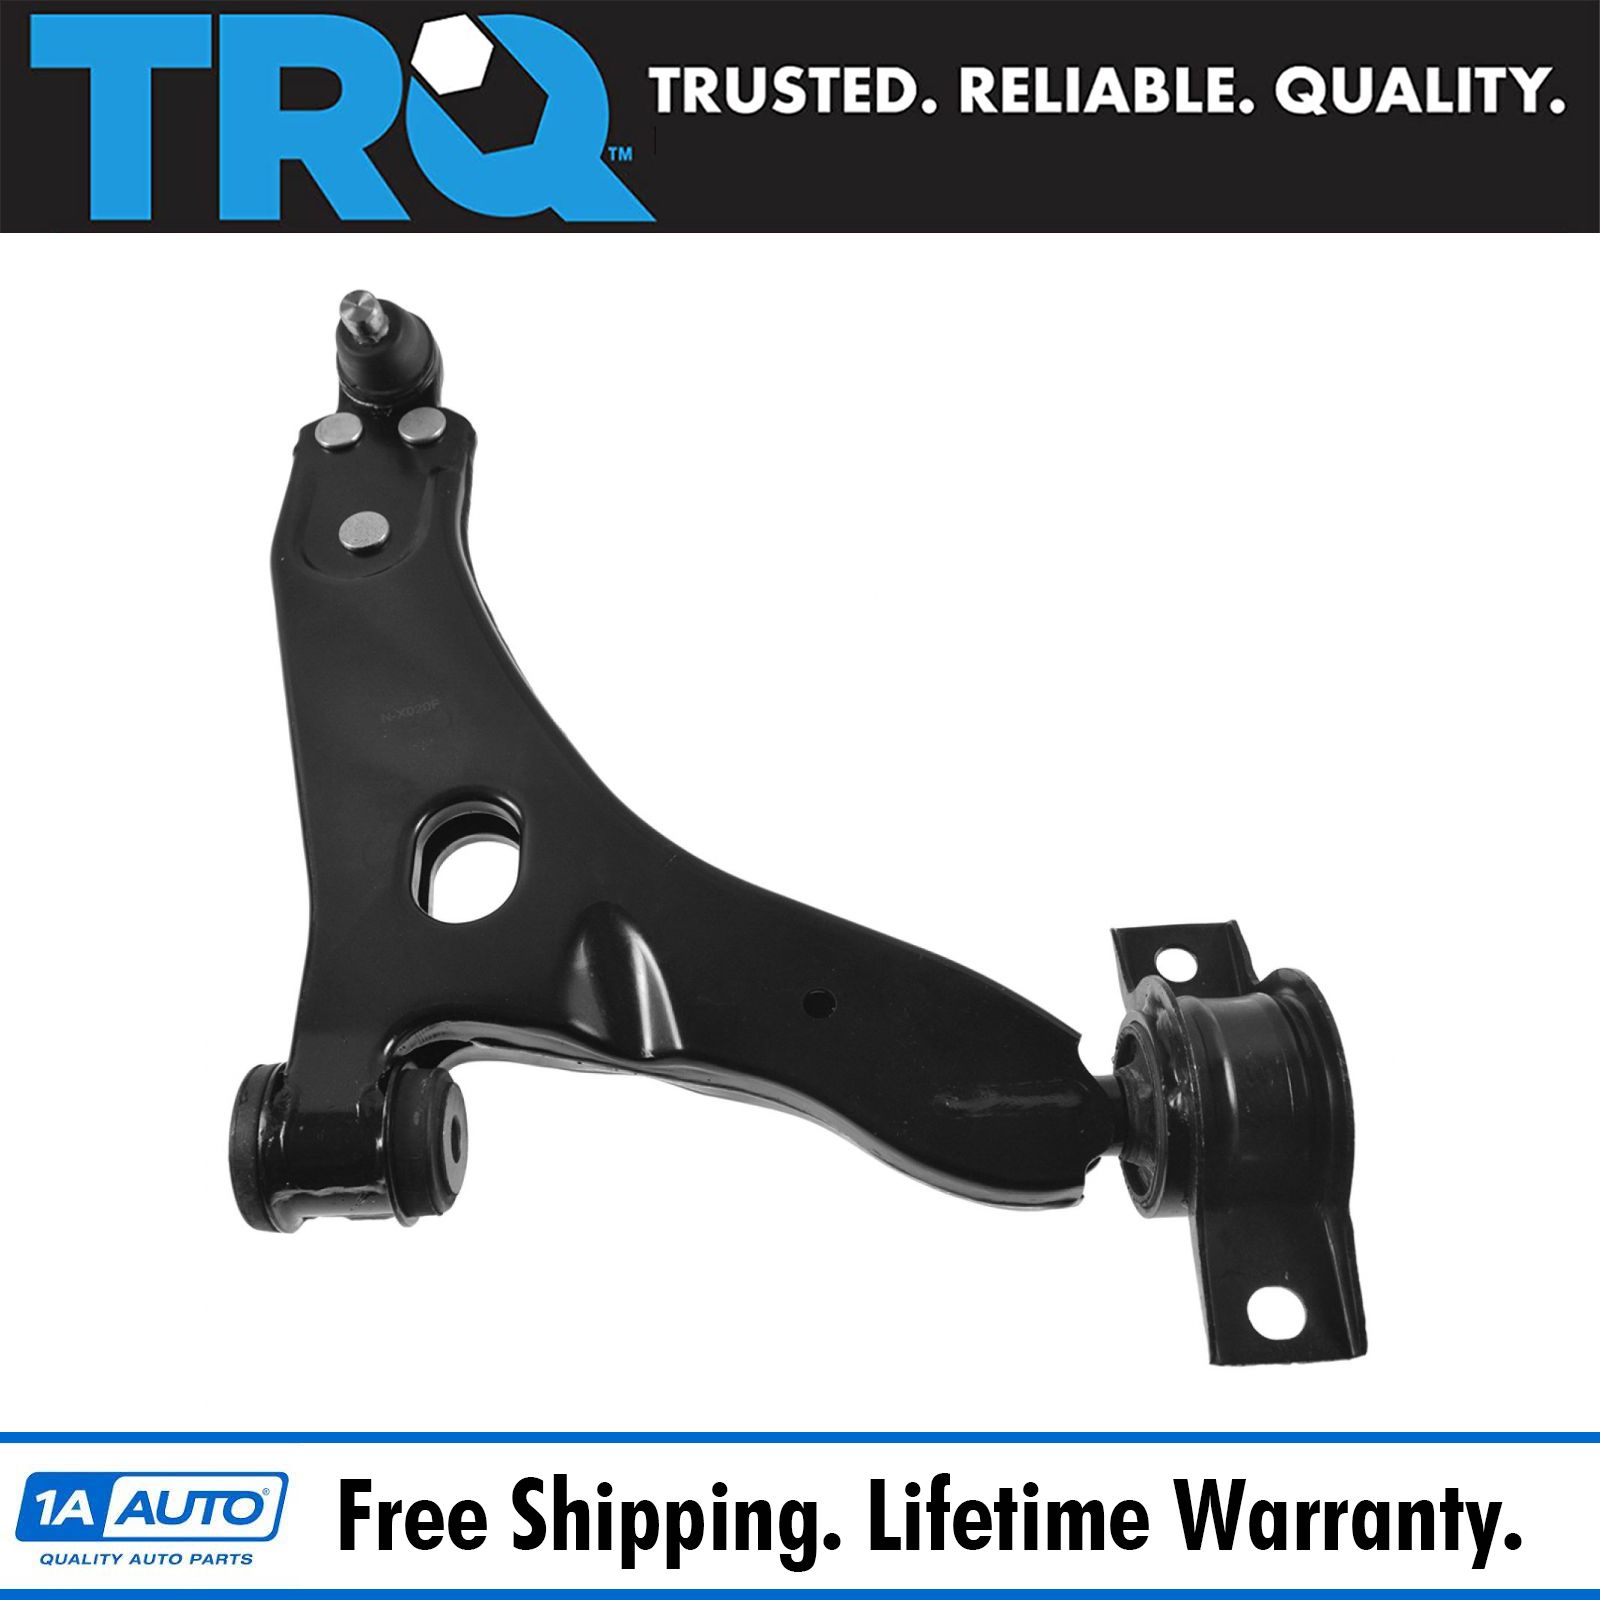 Ford Focus 2000 2004 Replace 2fyp Remanufactured Complete: Front Lower Control Arm Passenger Side Right RH For 00-04